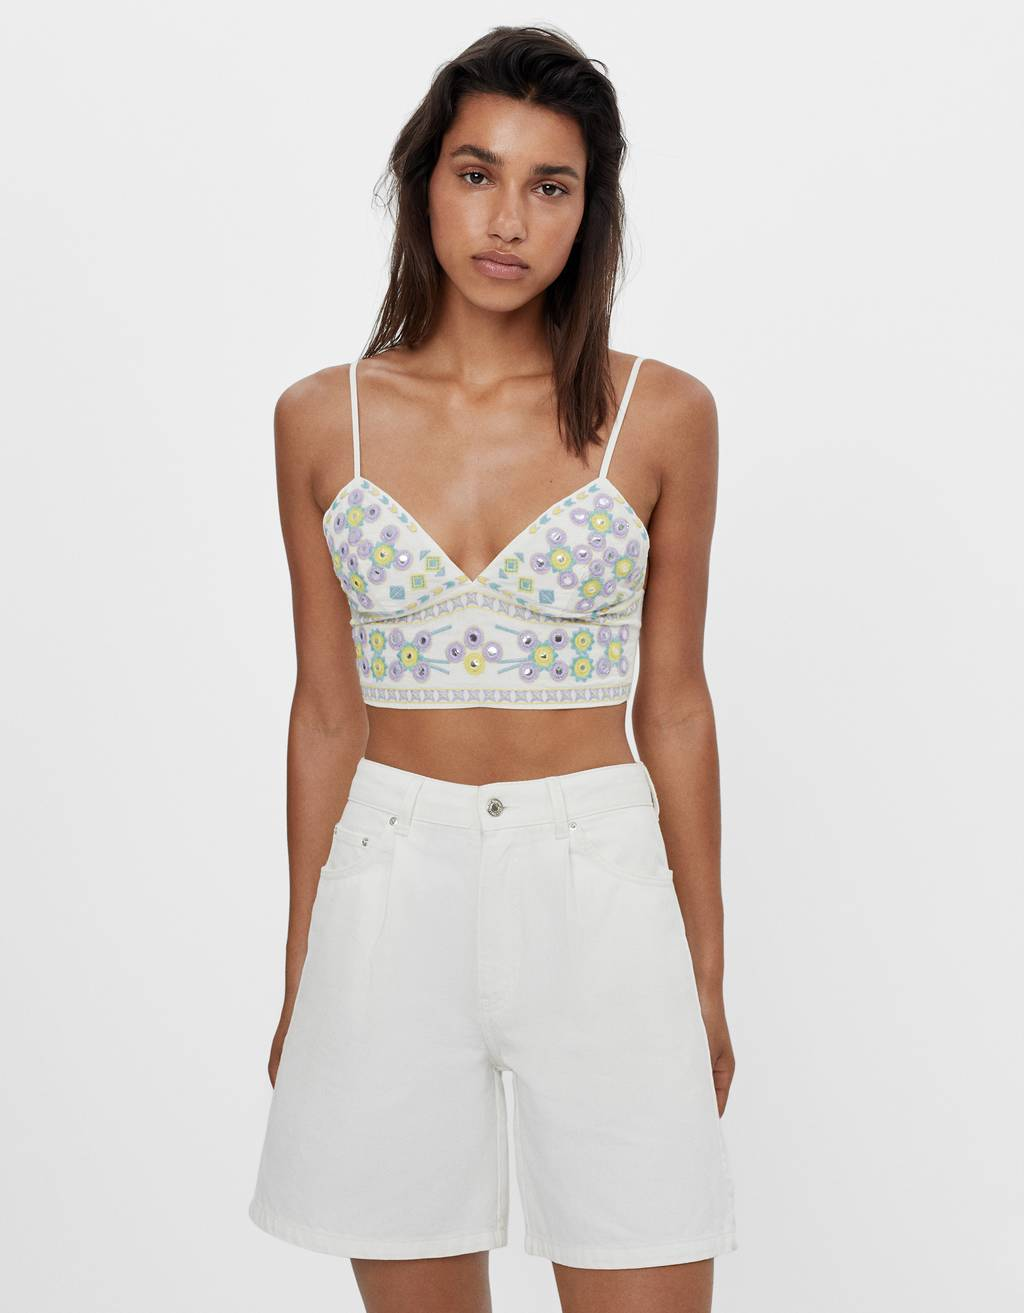 Embroidered bralette with mirrored sequins